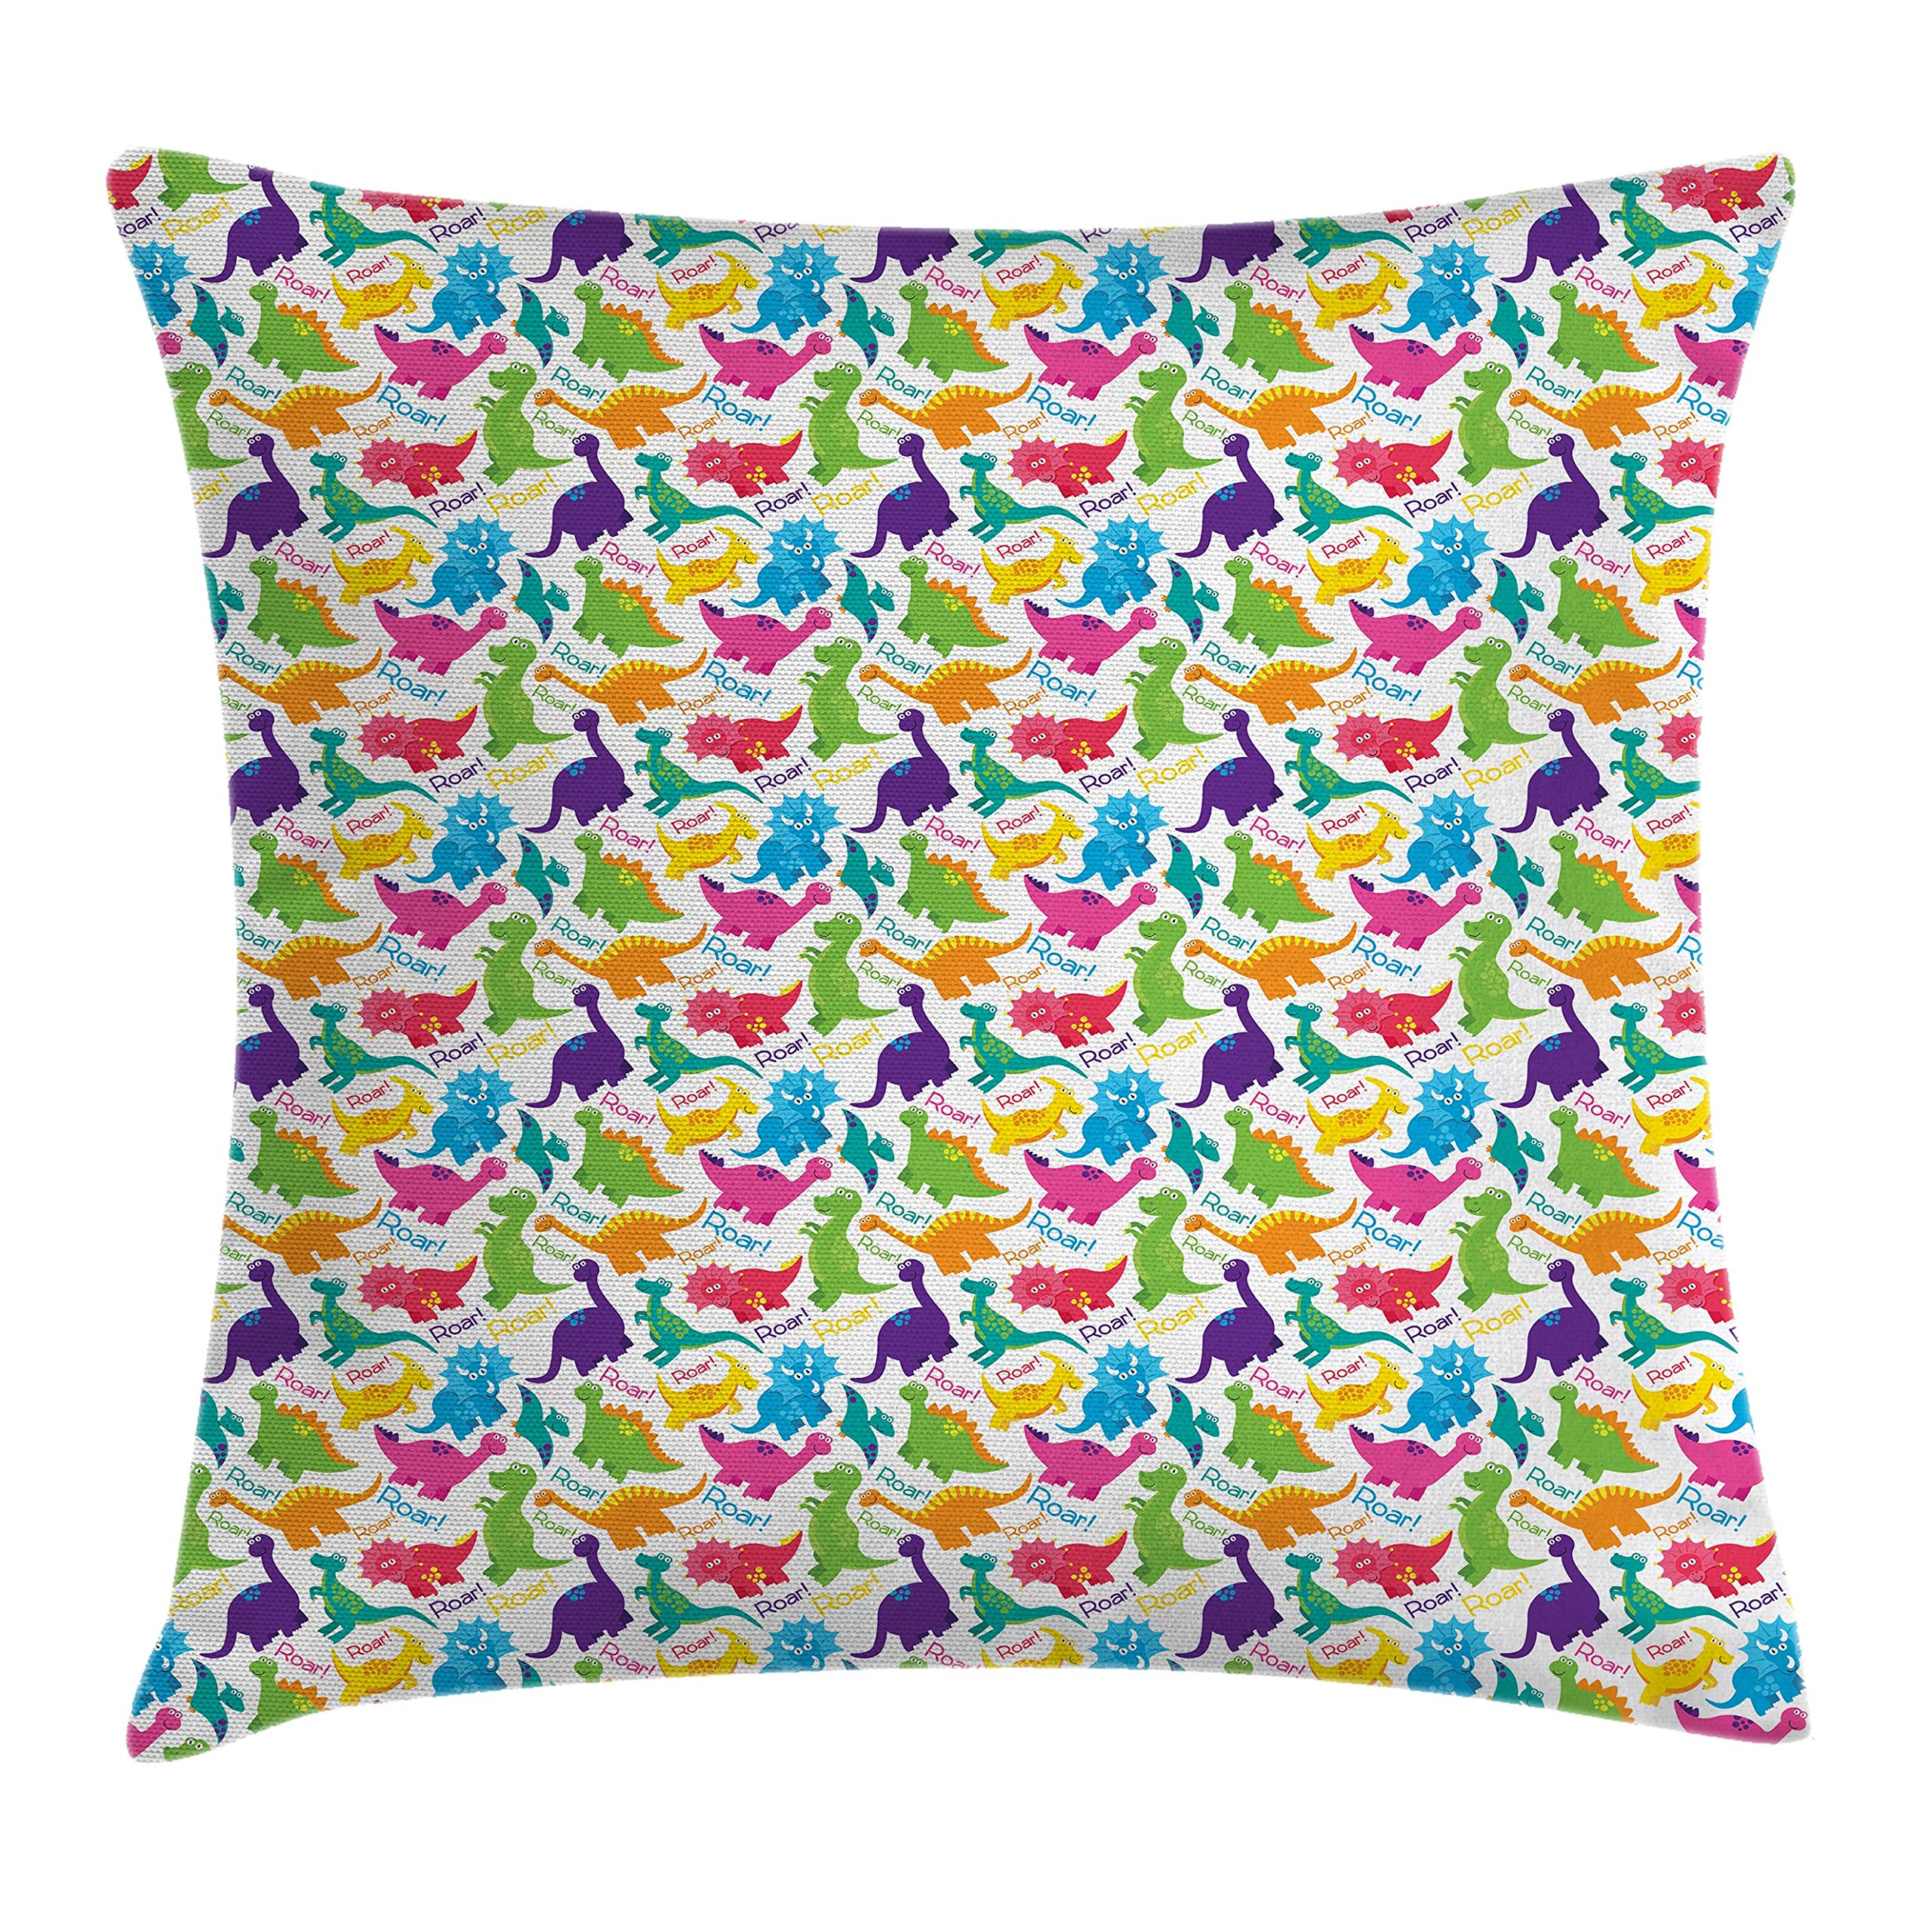 Ambesonne Jurassic Decor Throw Pillow Cushion Cover, Dinosaur Archaeological Historical Monster Wild Creature Cartoon Children, Decorative Square Accent Pillow Case, 18 X 18 inches, Multicolor